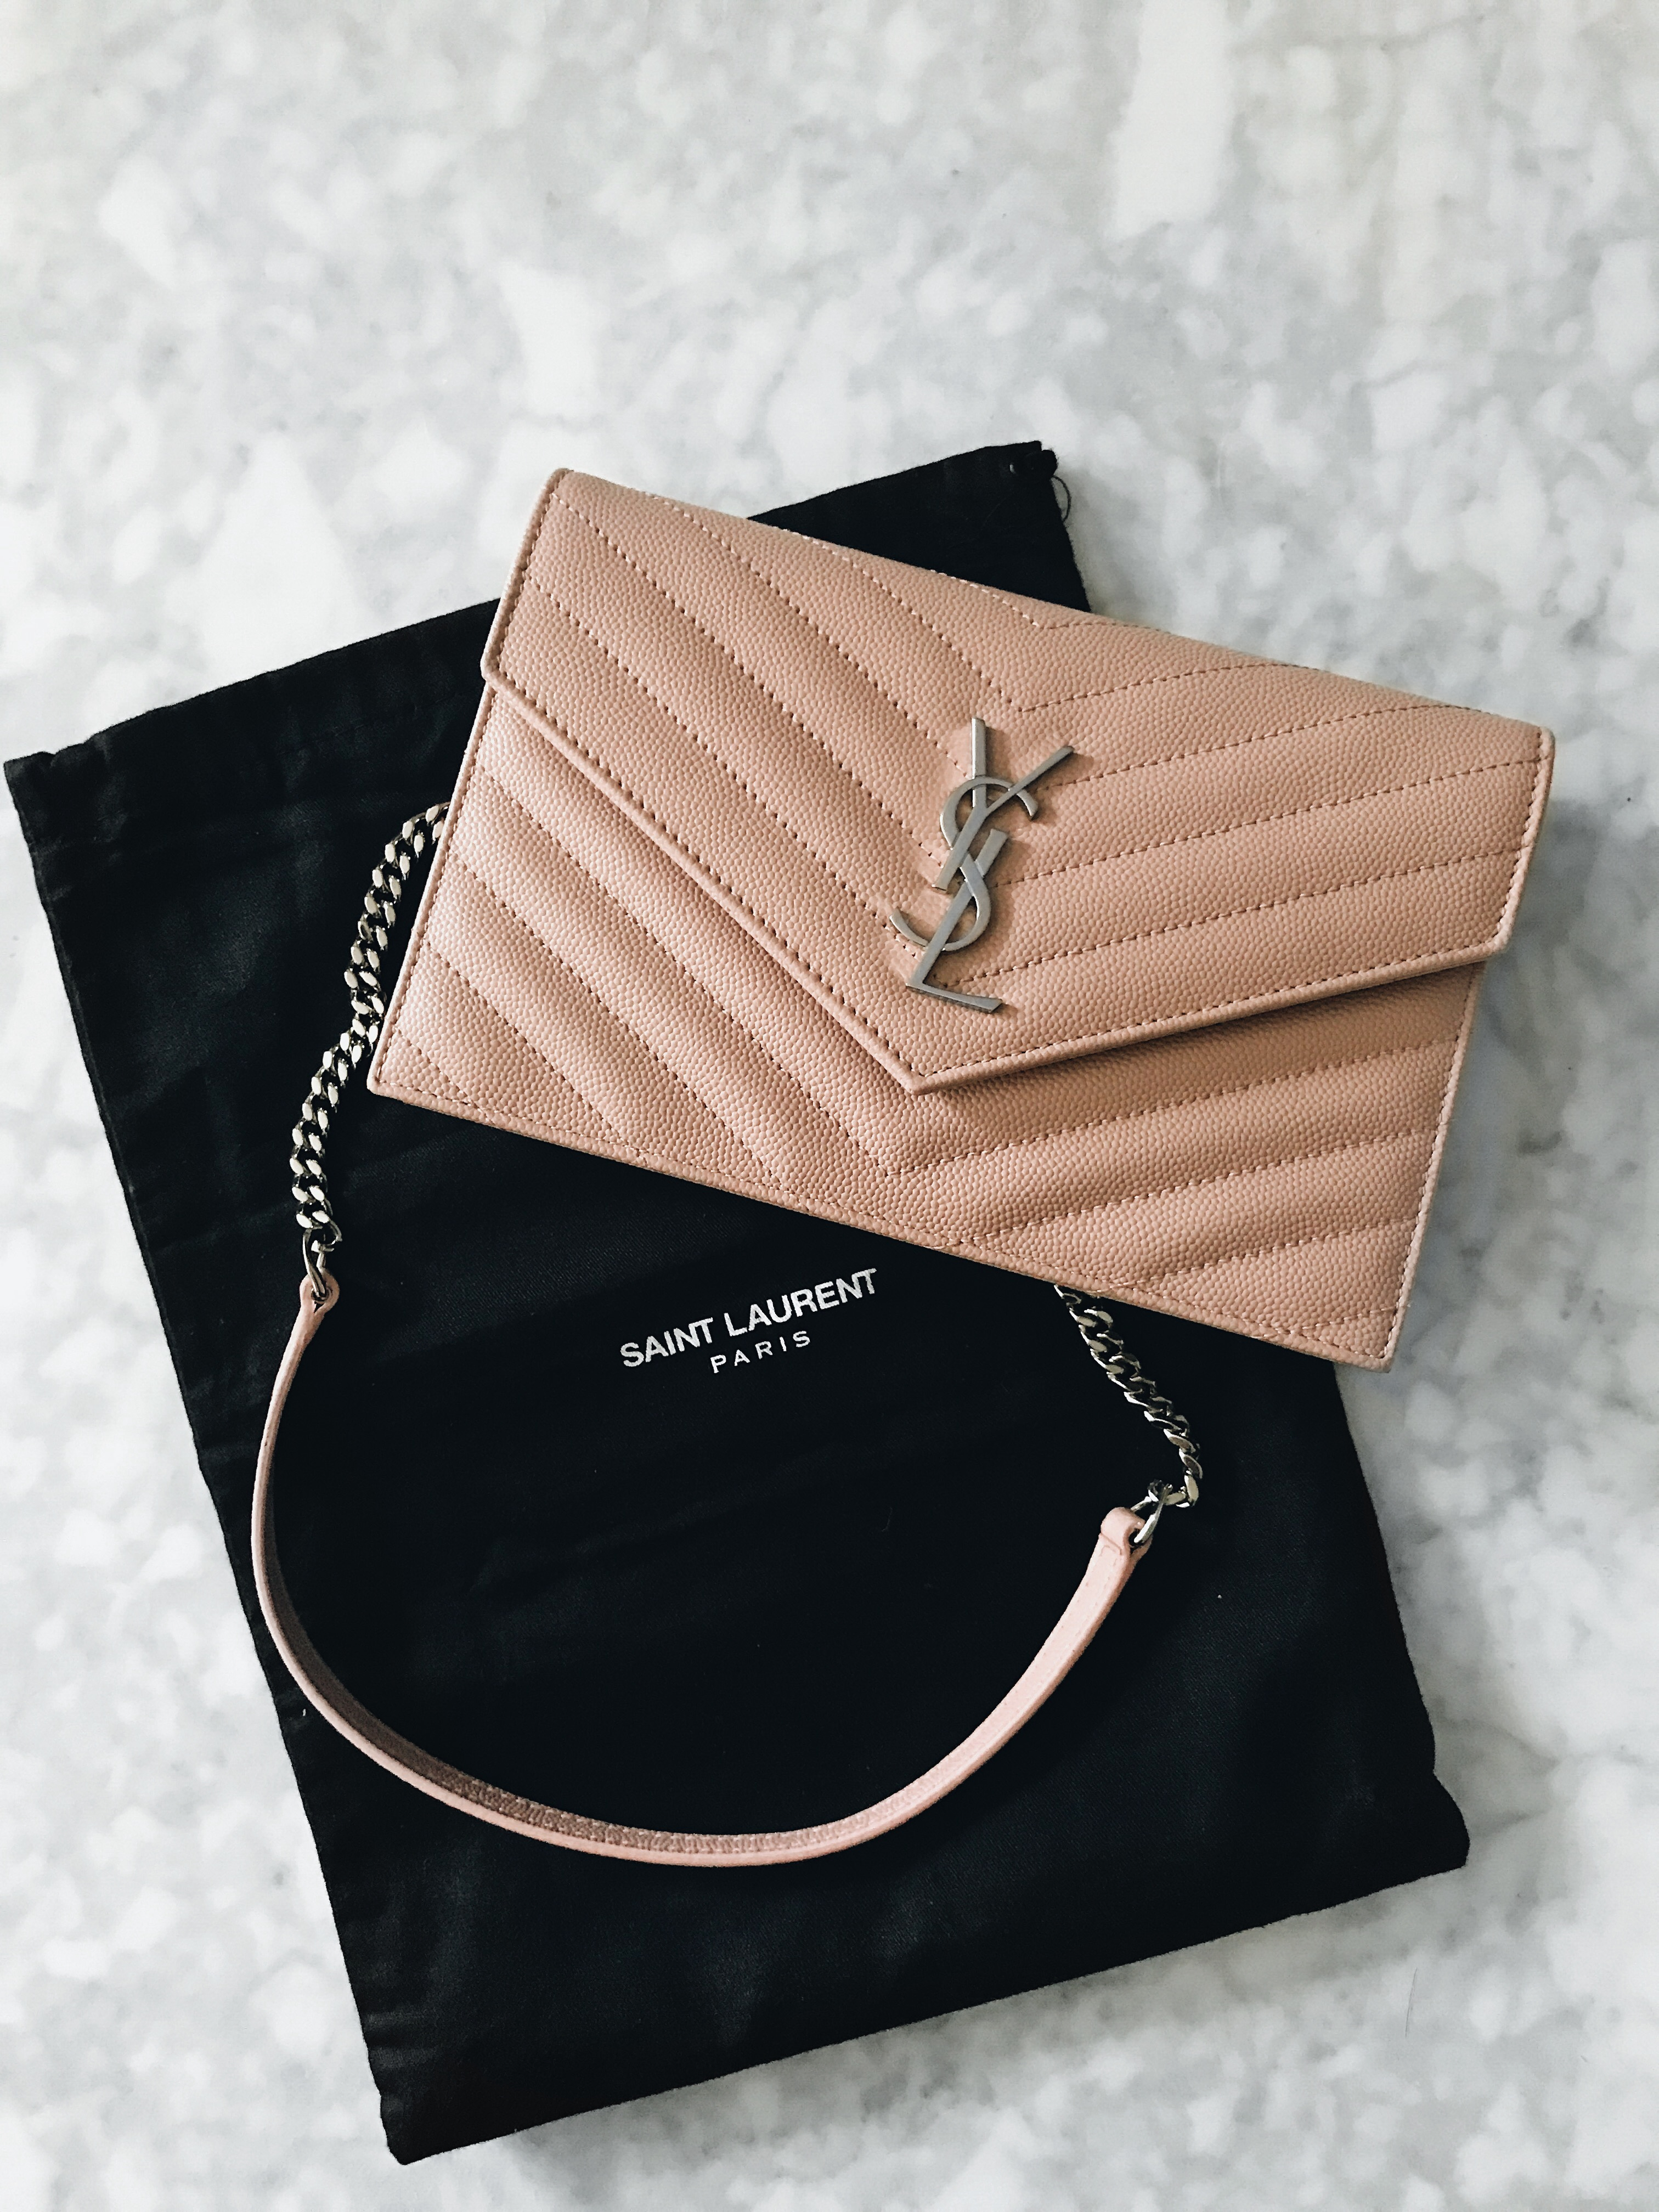 Mini Vs Woc Bag Review Yves Saint Laurent Monogram Wallet On Chain